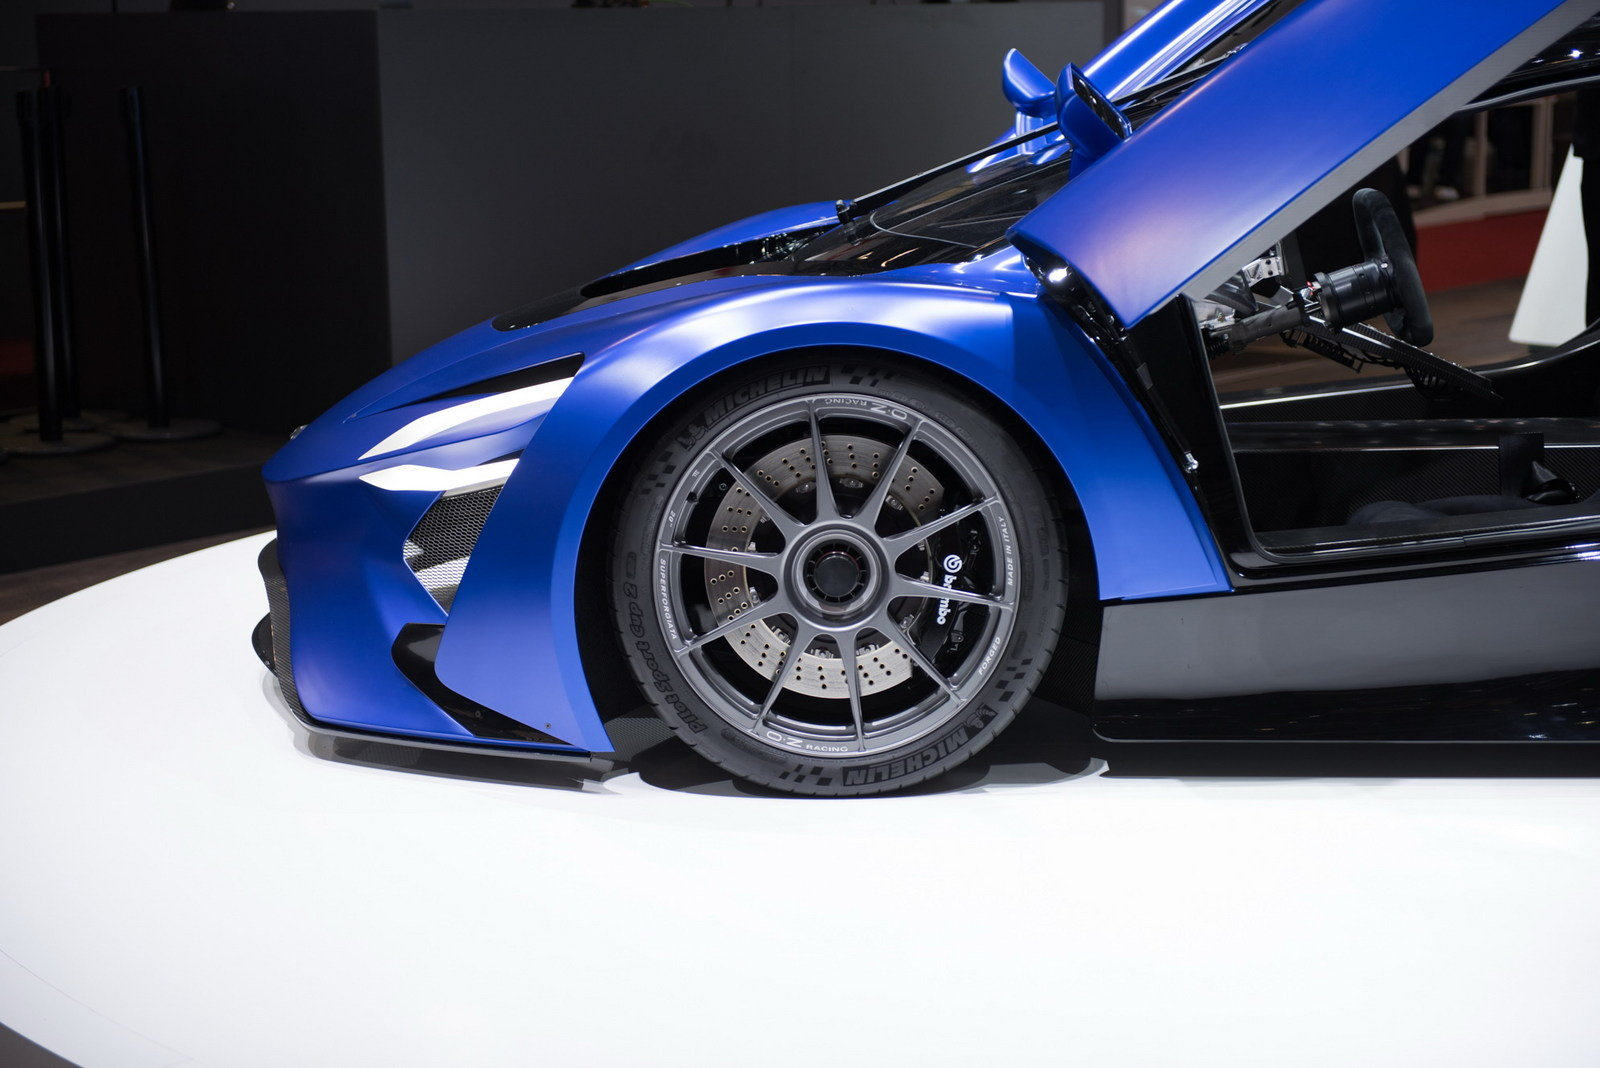 2016 Techrules At96 Trev Supercar Concept: 2016 Techrules AT96 TREV - Picture 668531